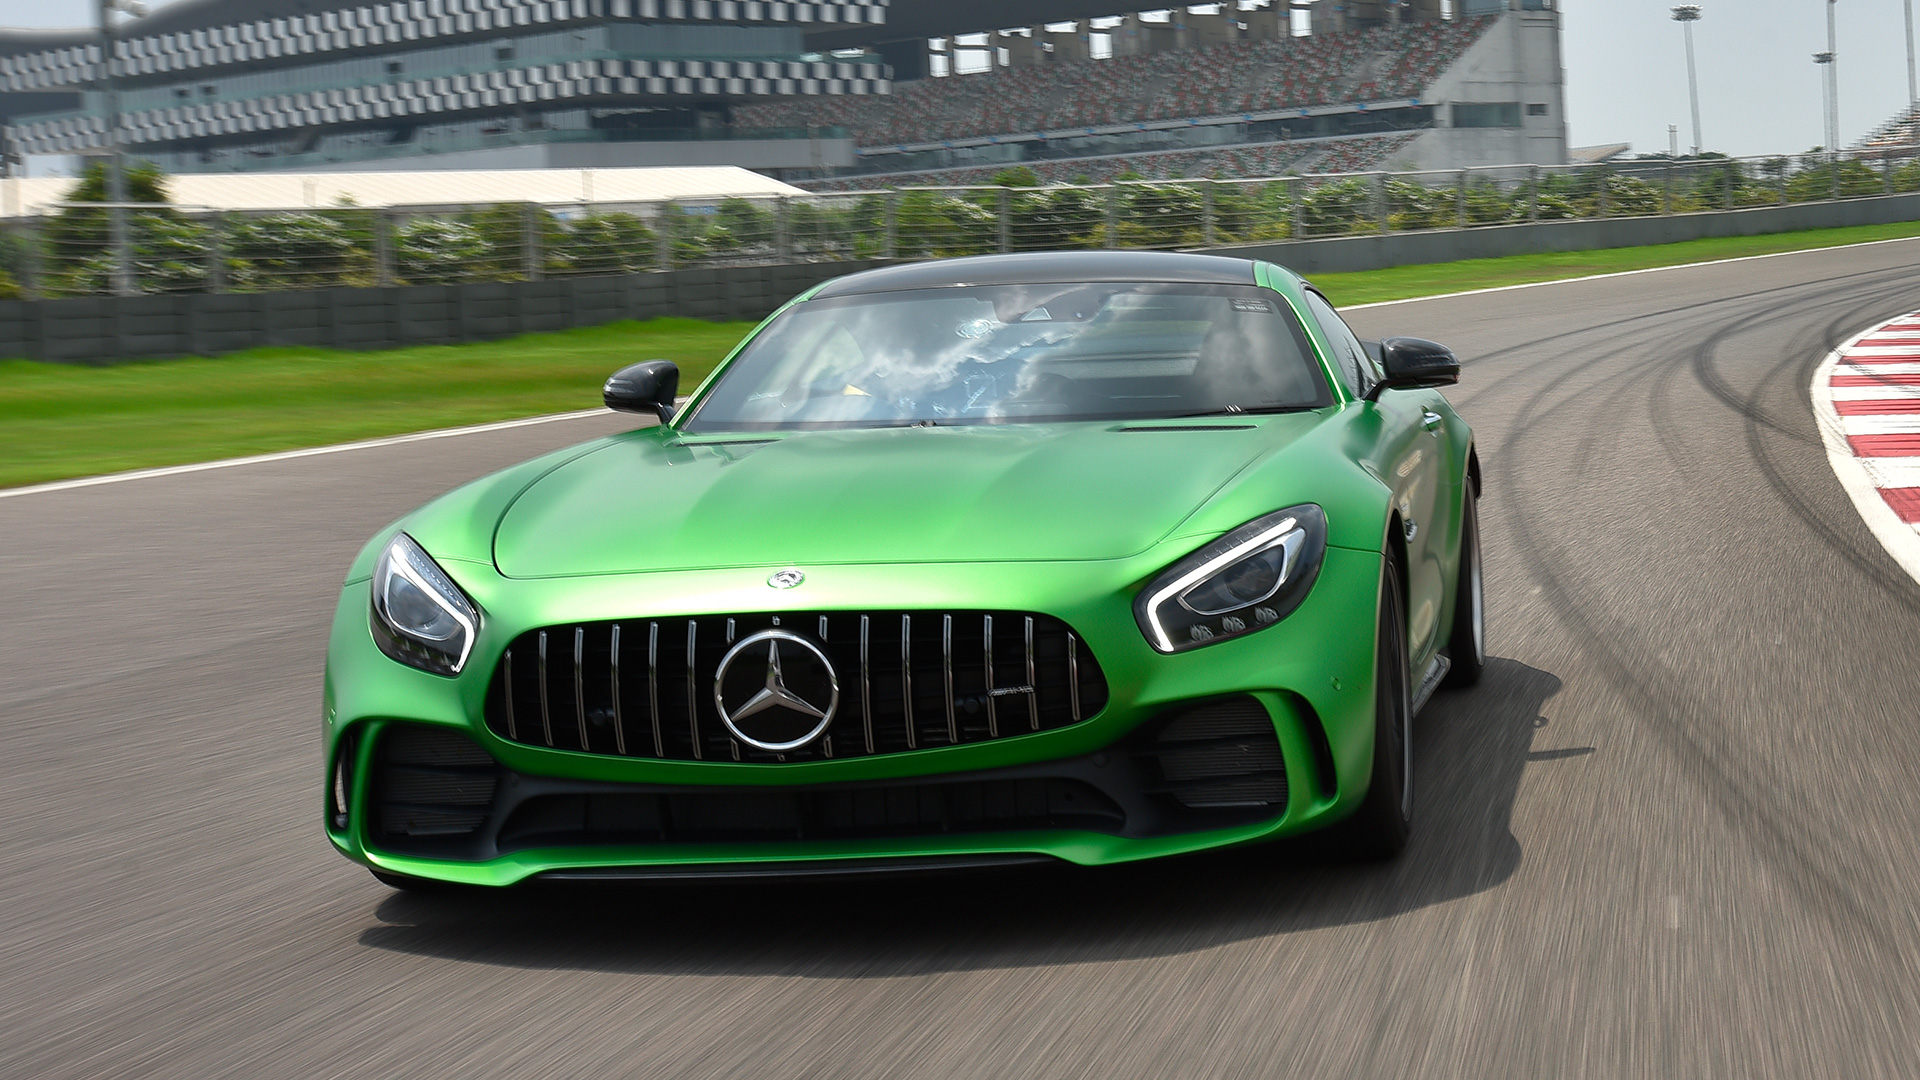 Mercedes benz amg gt 2017 r price mileage reviews for 2017 mercedes benz gts amg price